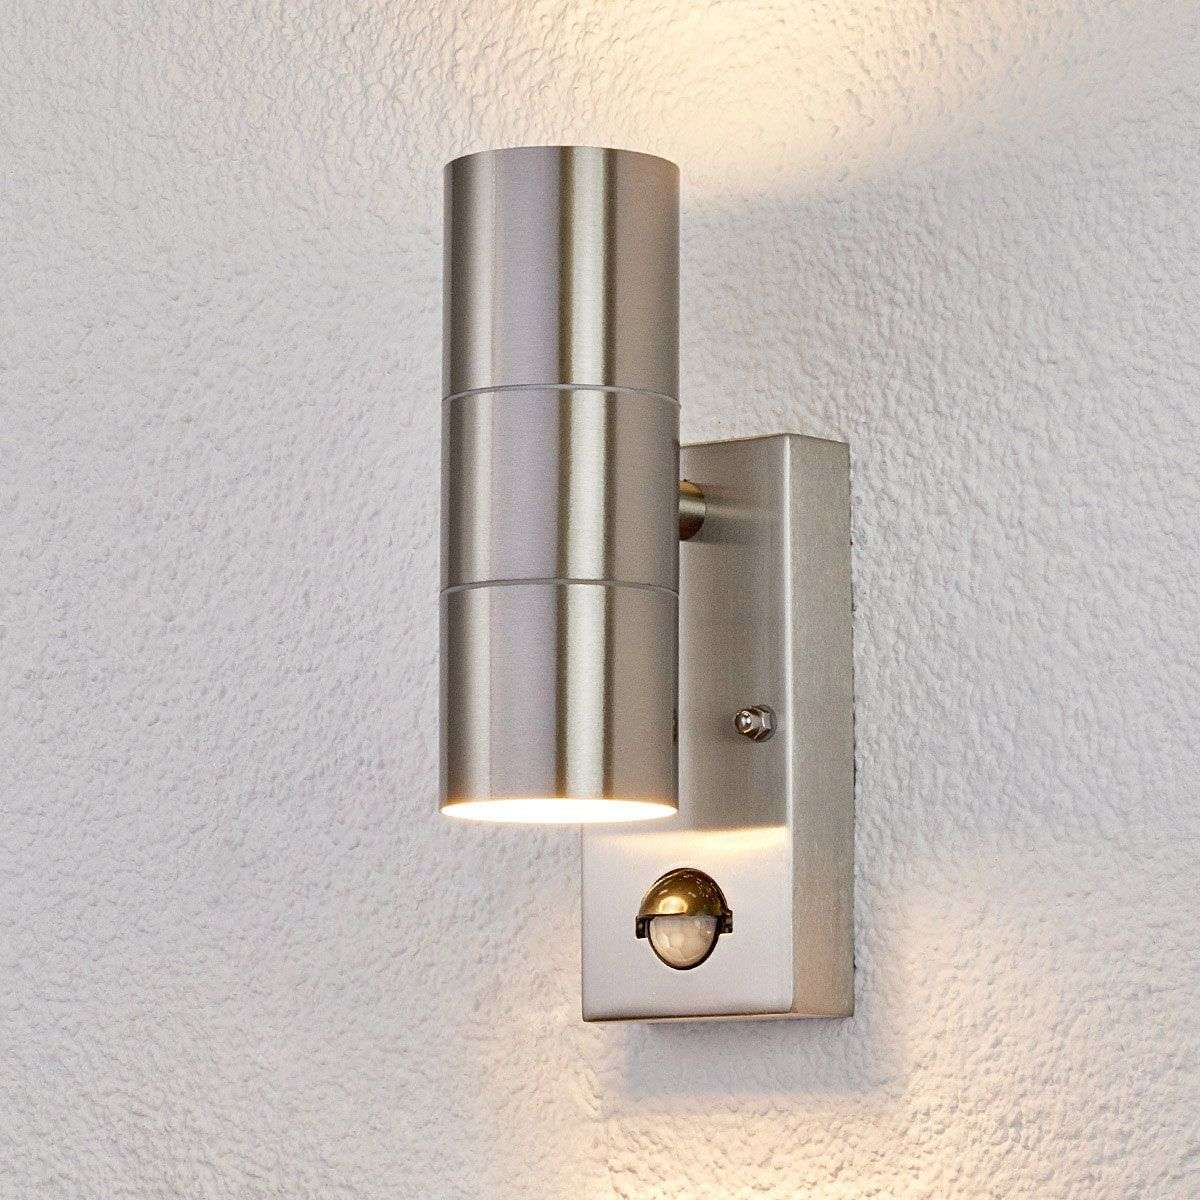 Outdoor wall light eyrin with motion detector for Exterior wall light with motion sensor